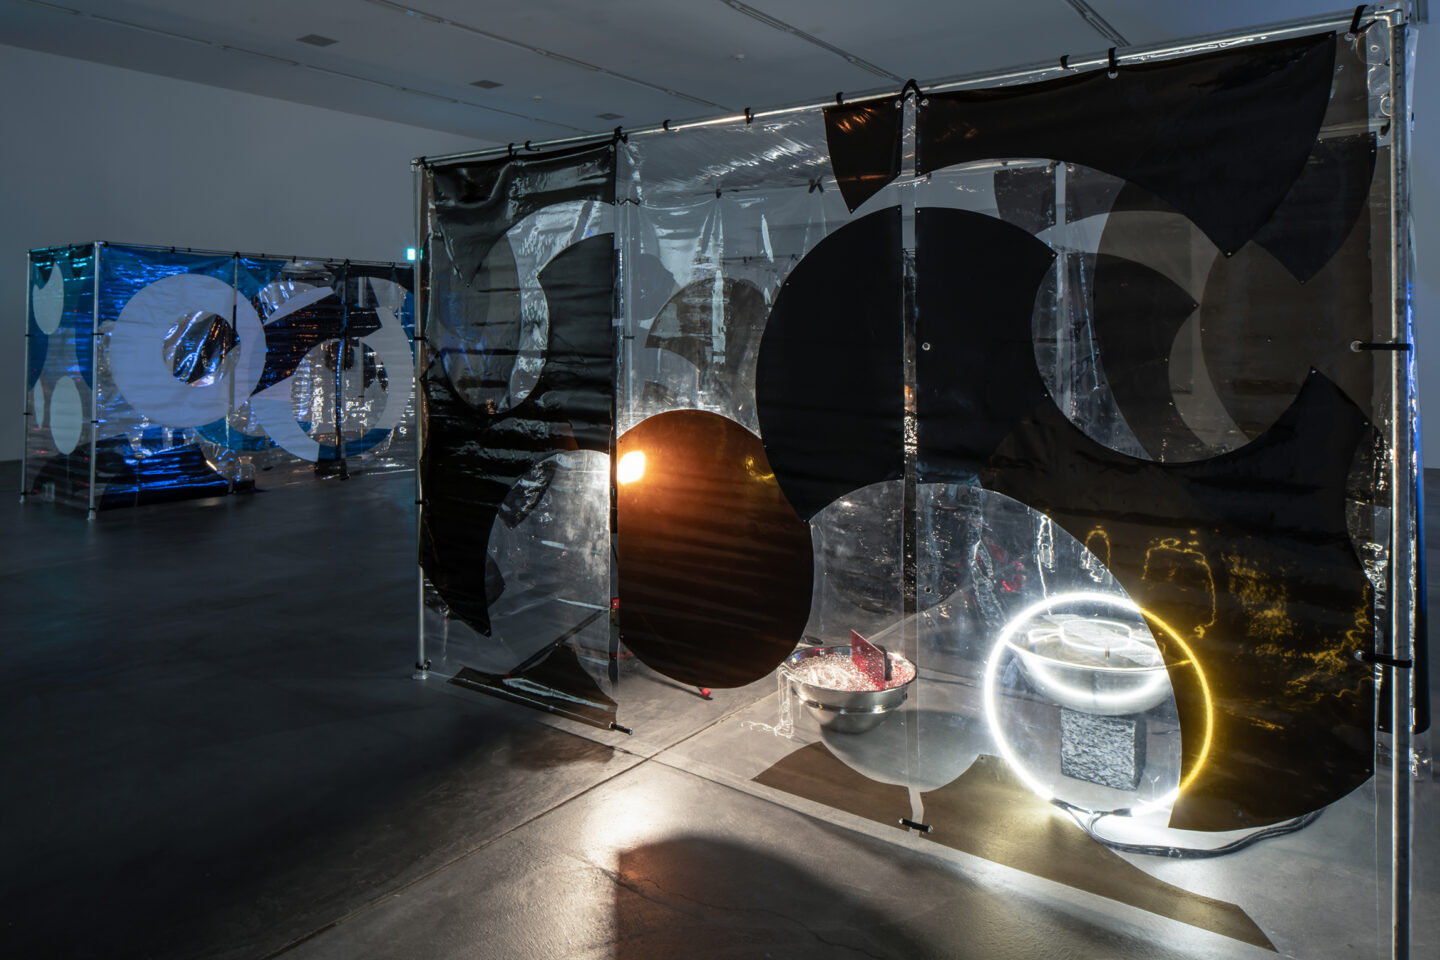 Exhibition View Groupshow «Producing Futures ; view on Anicka Yi, Home in 30 Day, Don't Wash, 2015; We Are Water, 2015; Your Hand Feels Like a Pillow That´s Been Microwaved, 2015» at Migros Museum, Zurich / Photo: Lorenzo Pusterla / Courtesy: the artist, The Kitchen, New York, and  47 Canal, New York